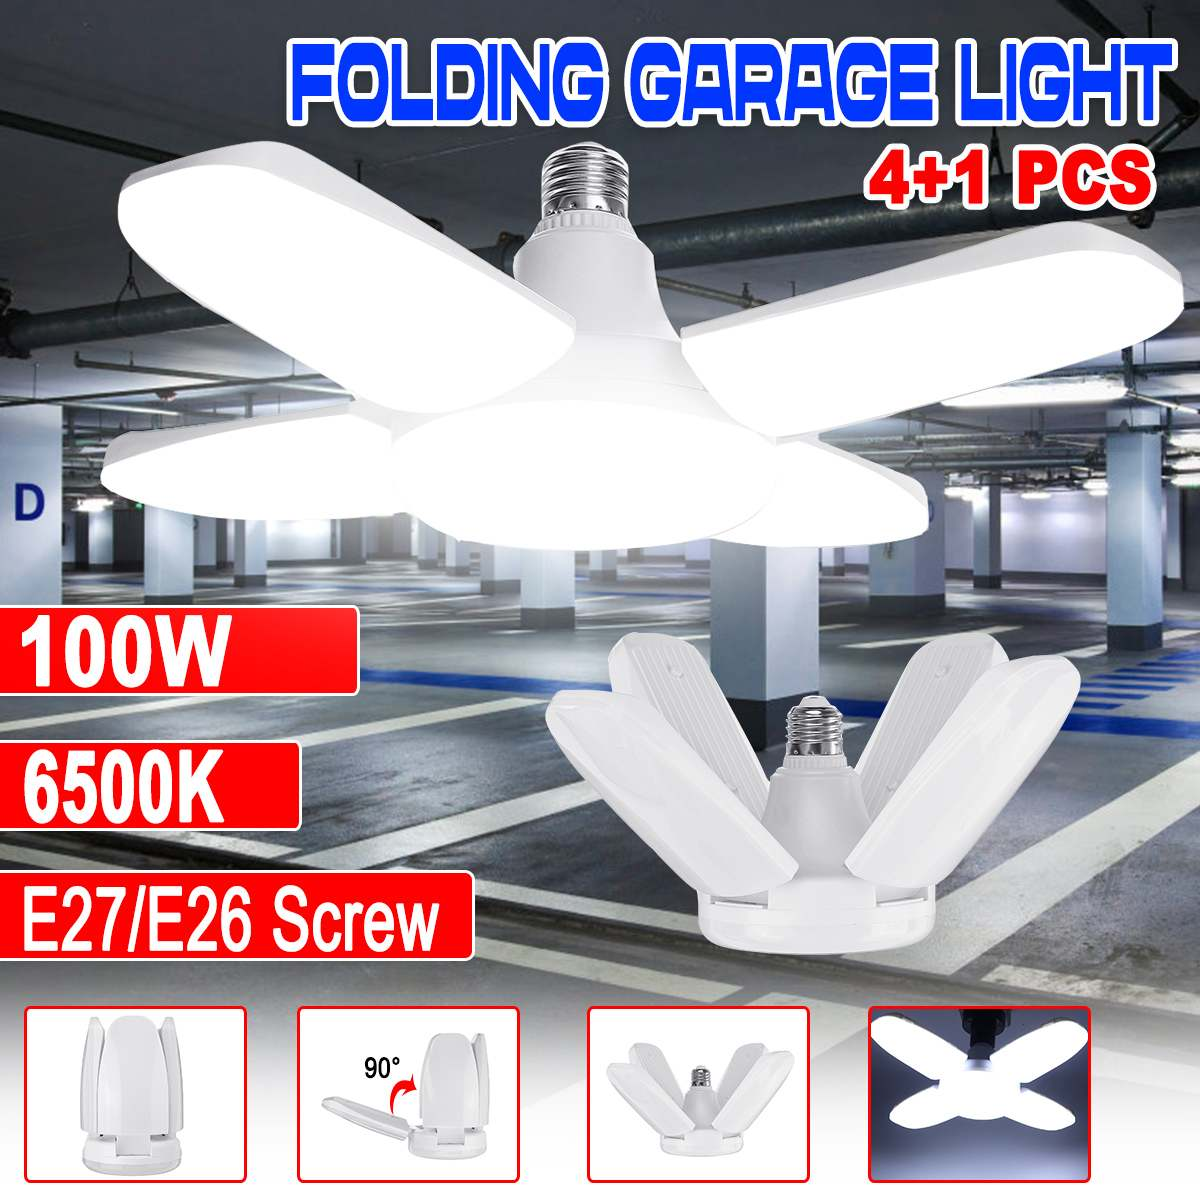 100W 6500K LED Garage Lights Shop Utility Ceiling Deformable E27/E26 Daylight LEDs Lamp For Garage Basement Workshop